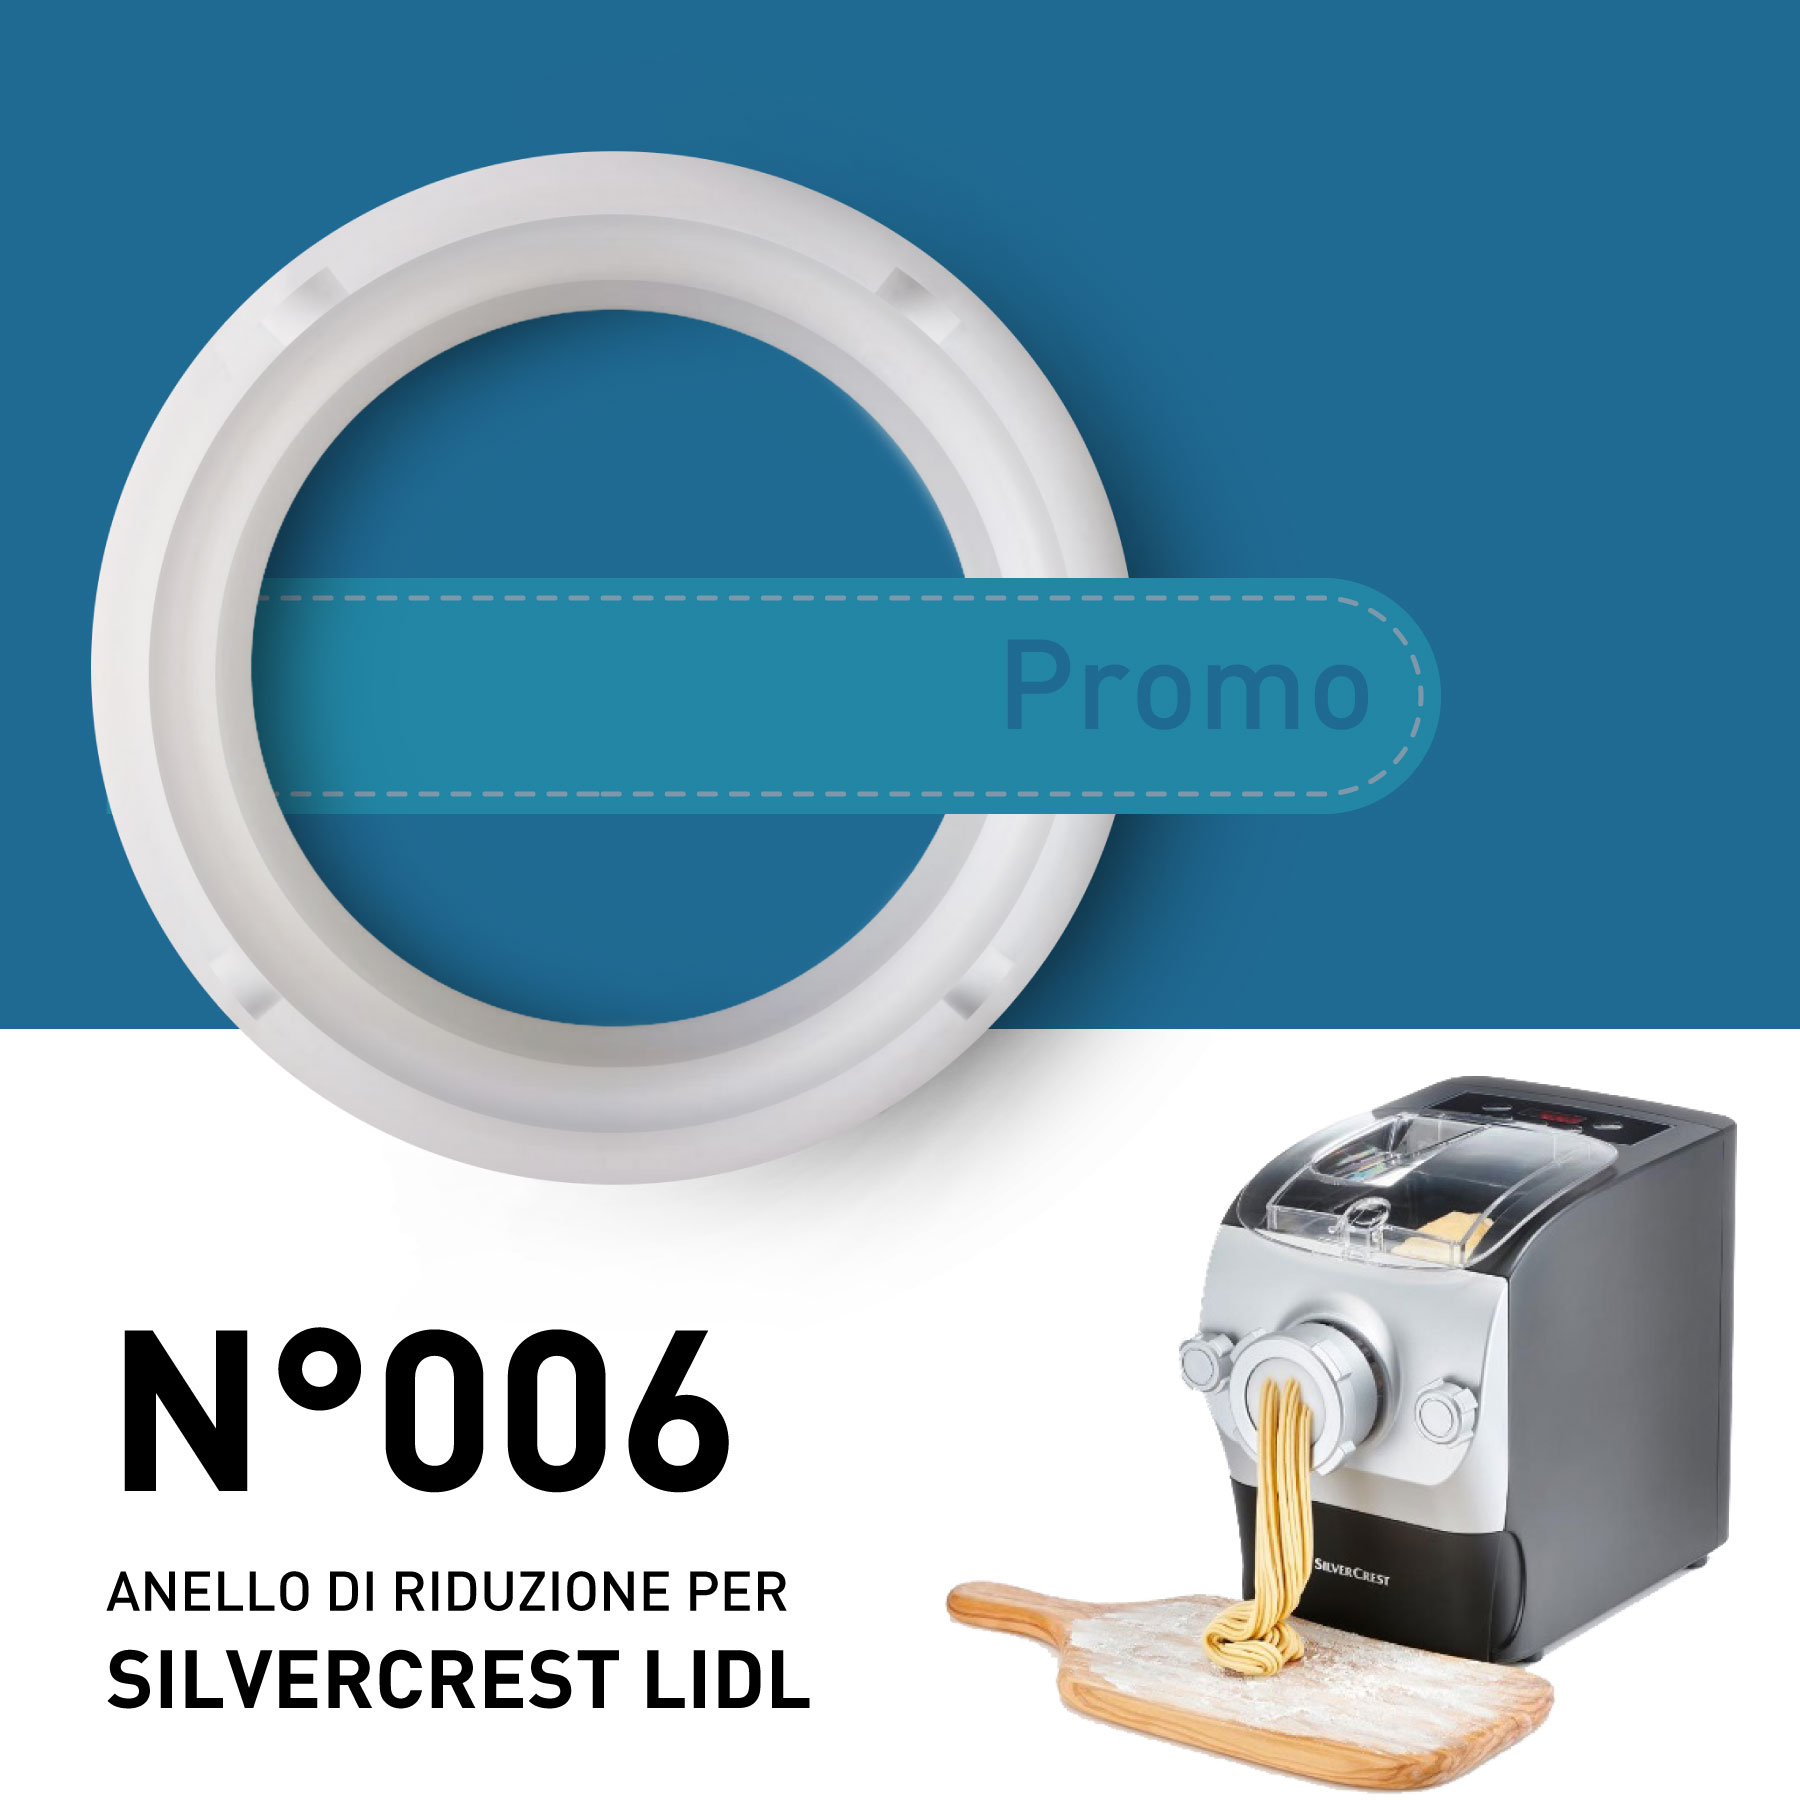 Reduction Rings N006 For Silvercrest Lidl Promotion